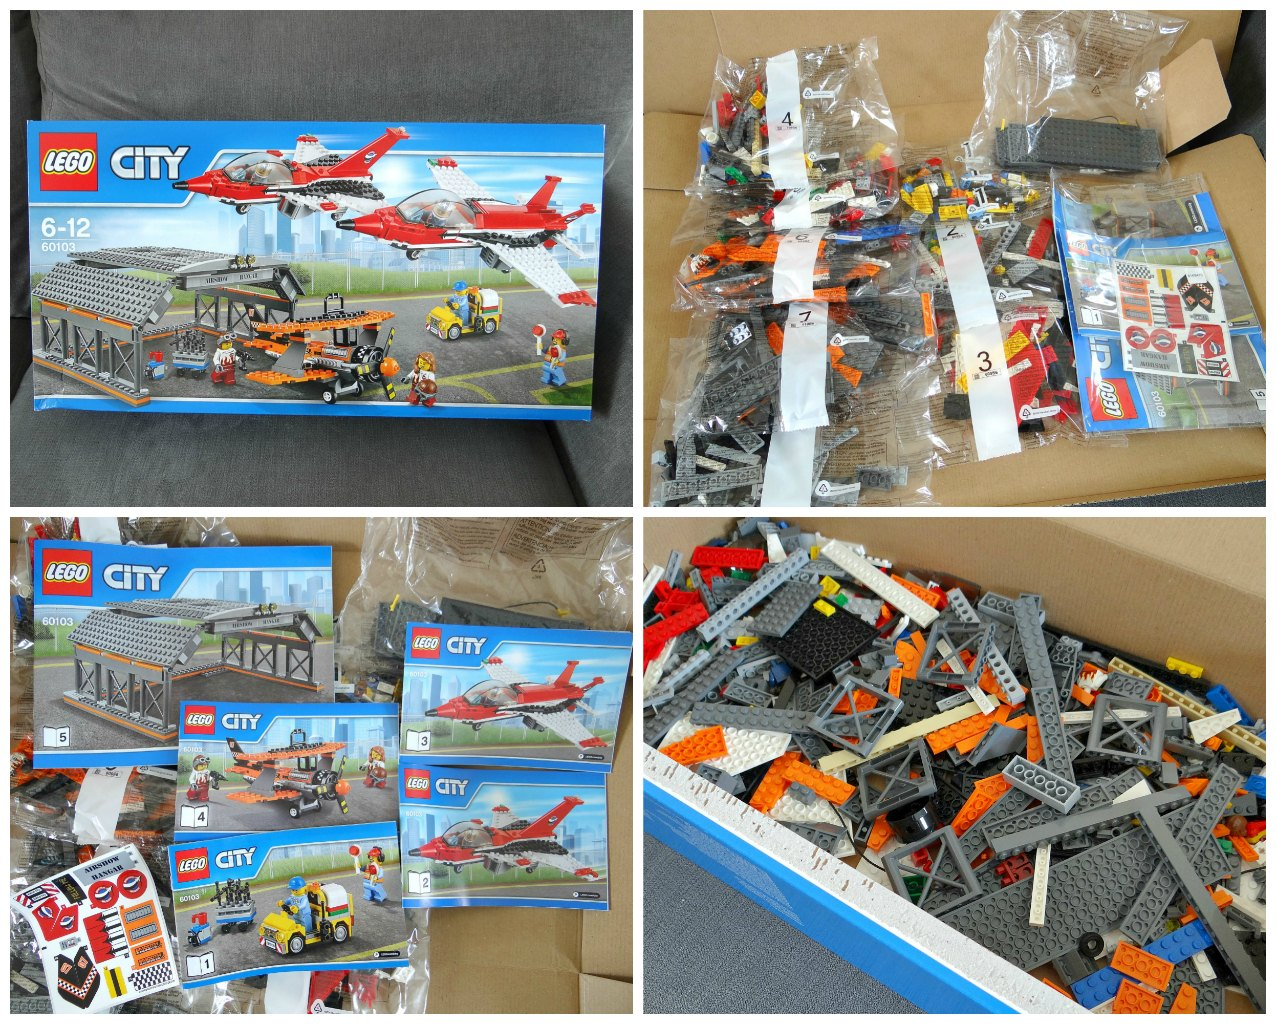 LEGO City Airport Air Show, LEGO vehicle, LEGO City